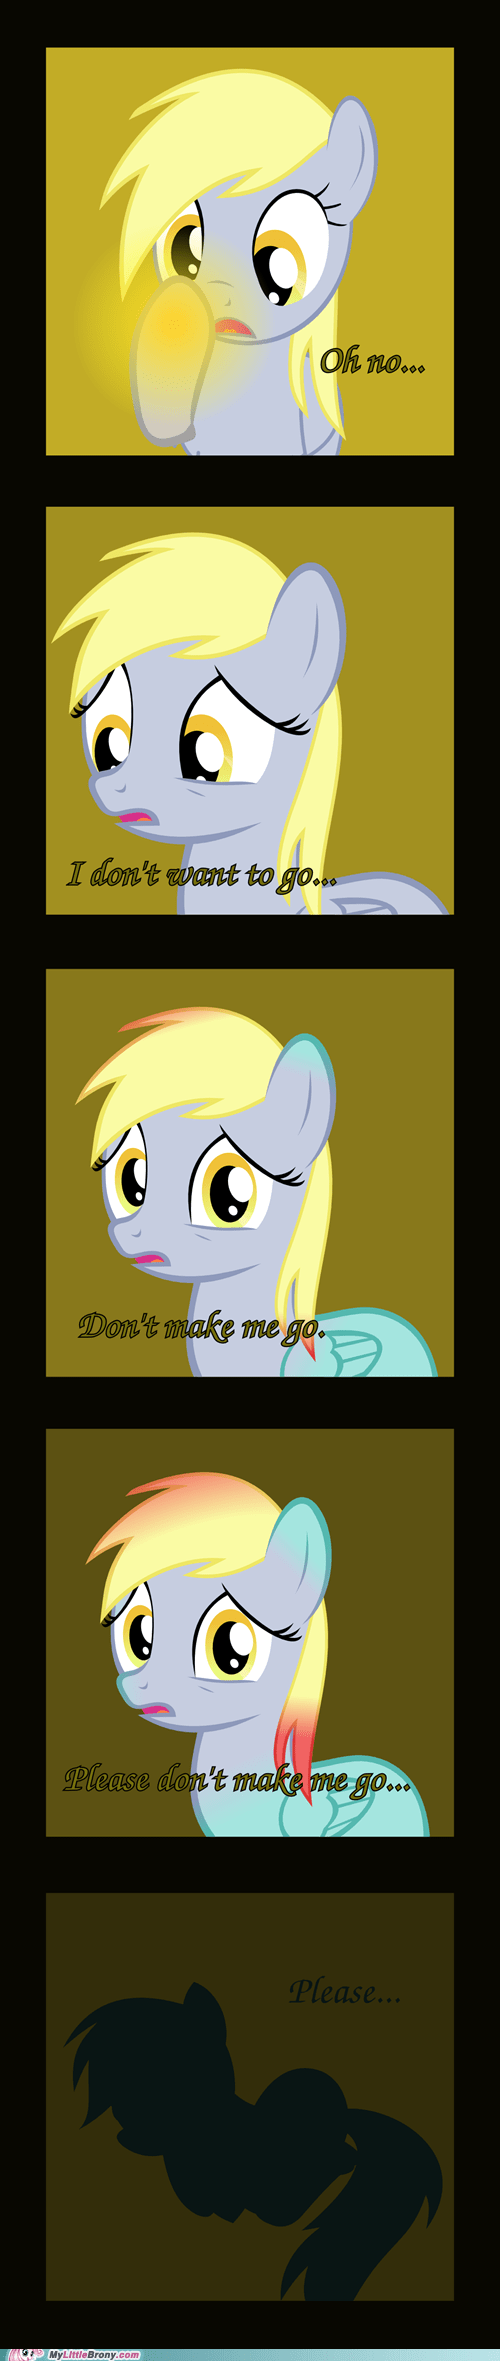 comics,derpy hooves,oh no,petition,save derpy